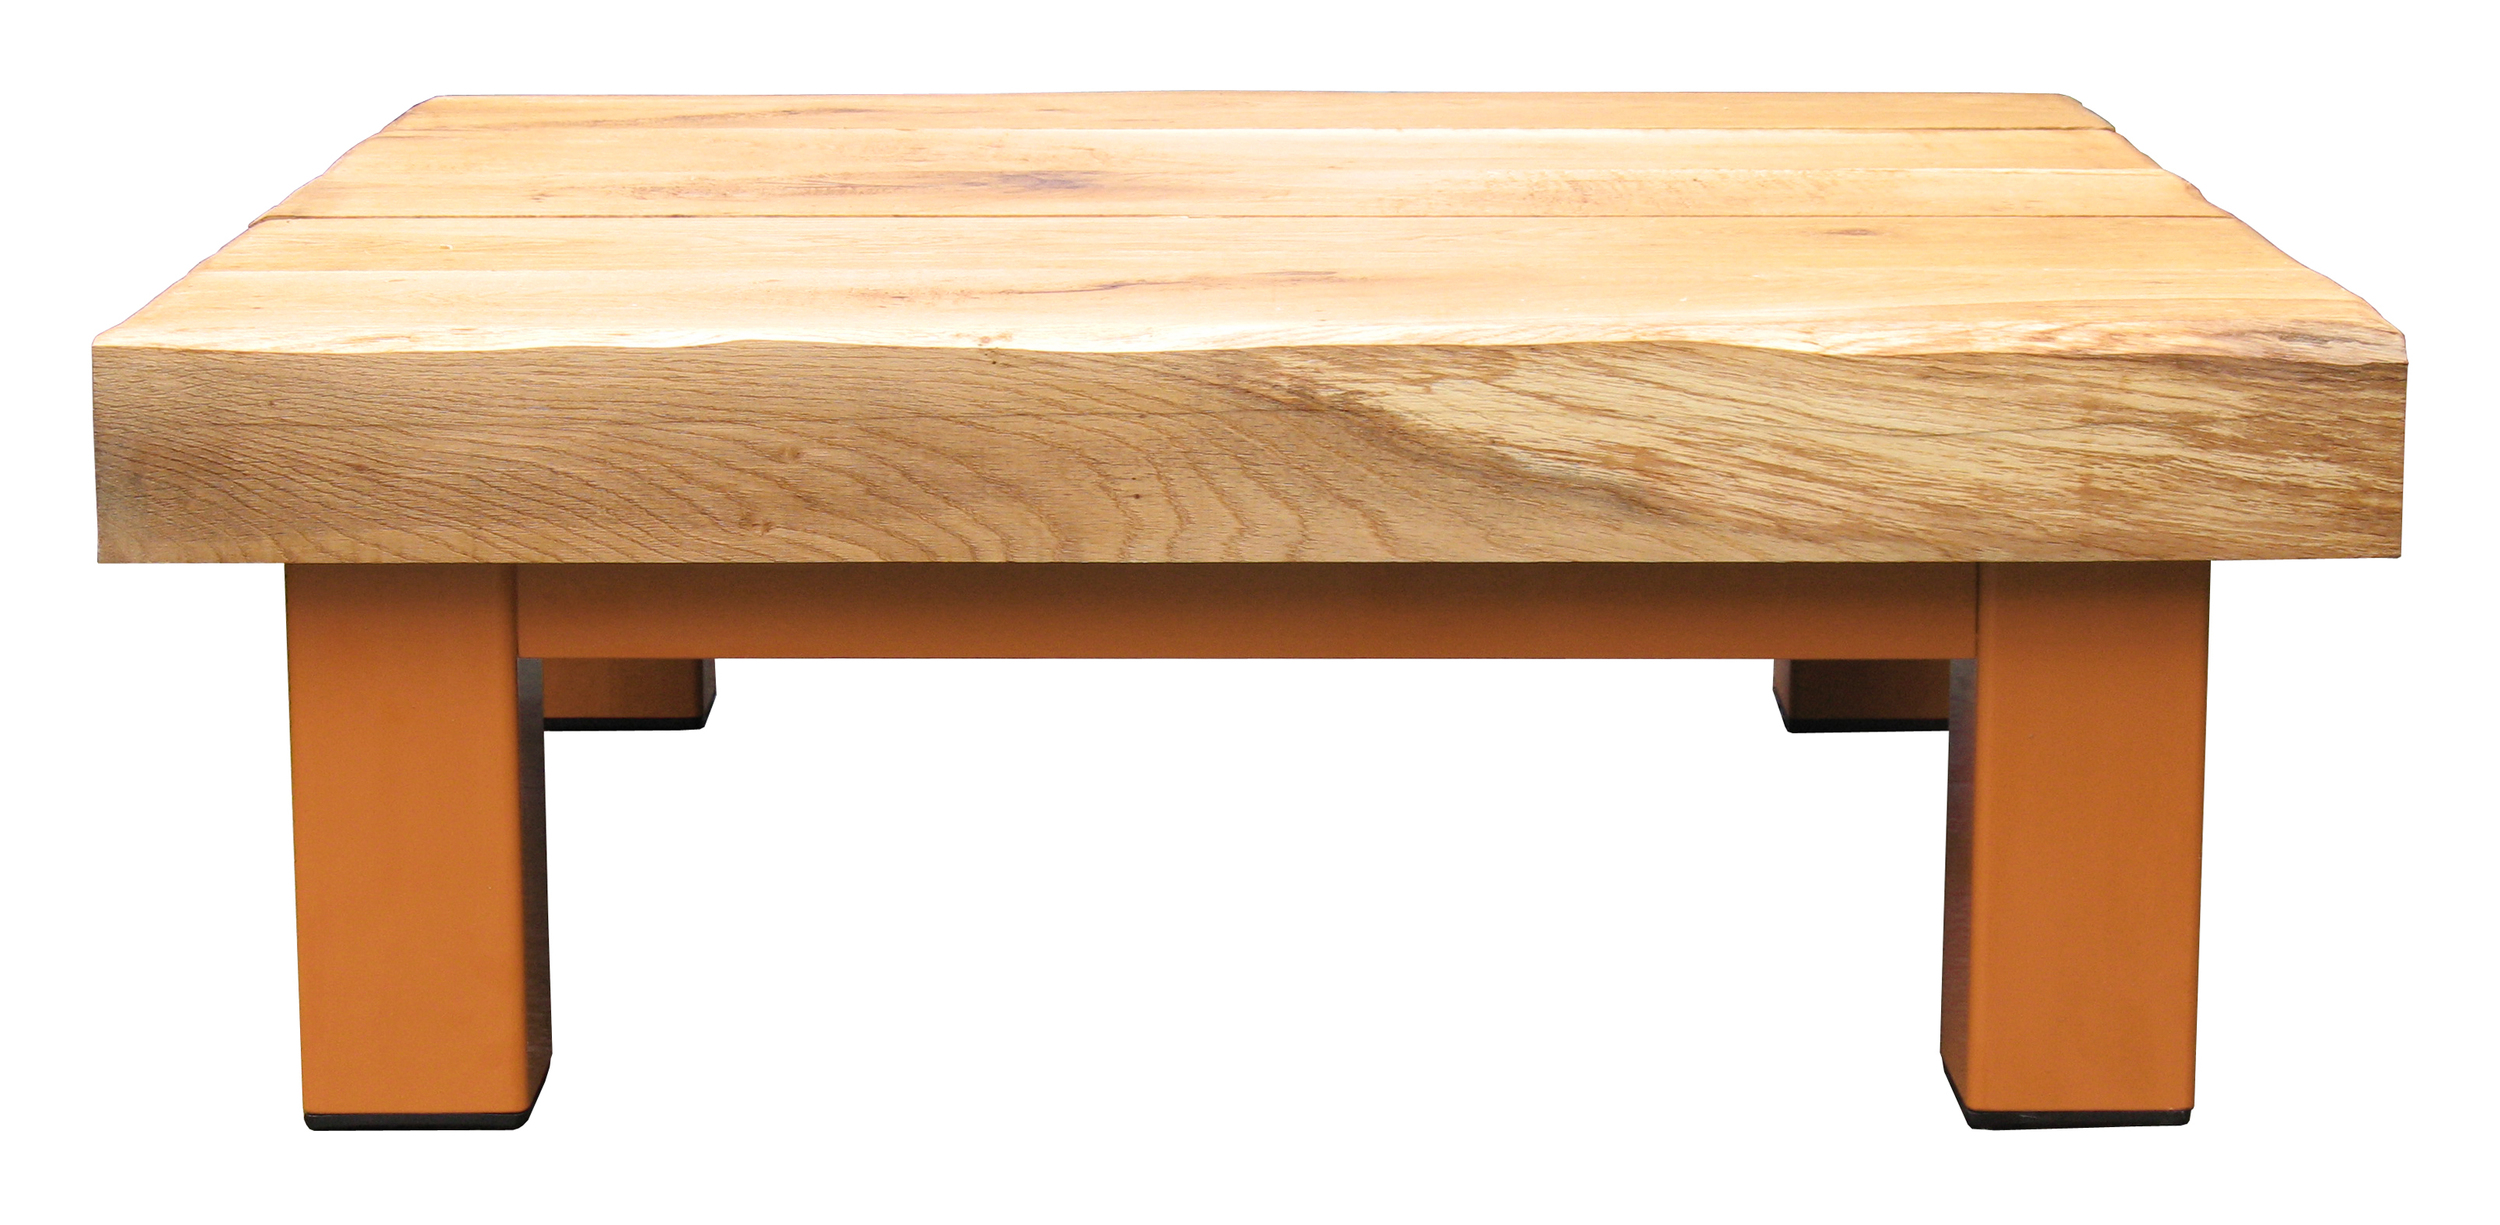 Oak & Iron Furniture Large Coffee Table - Deep Orange